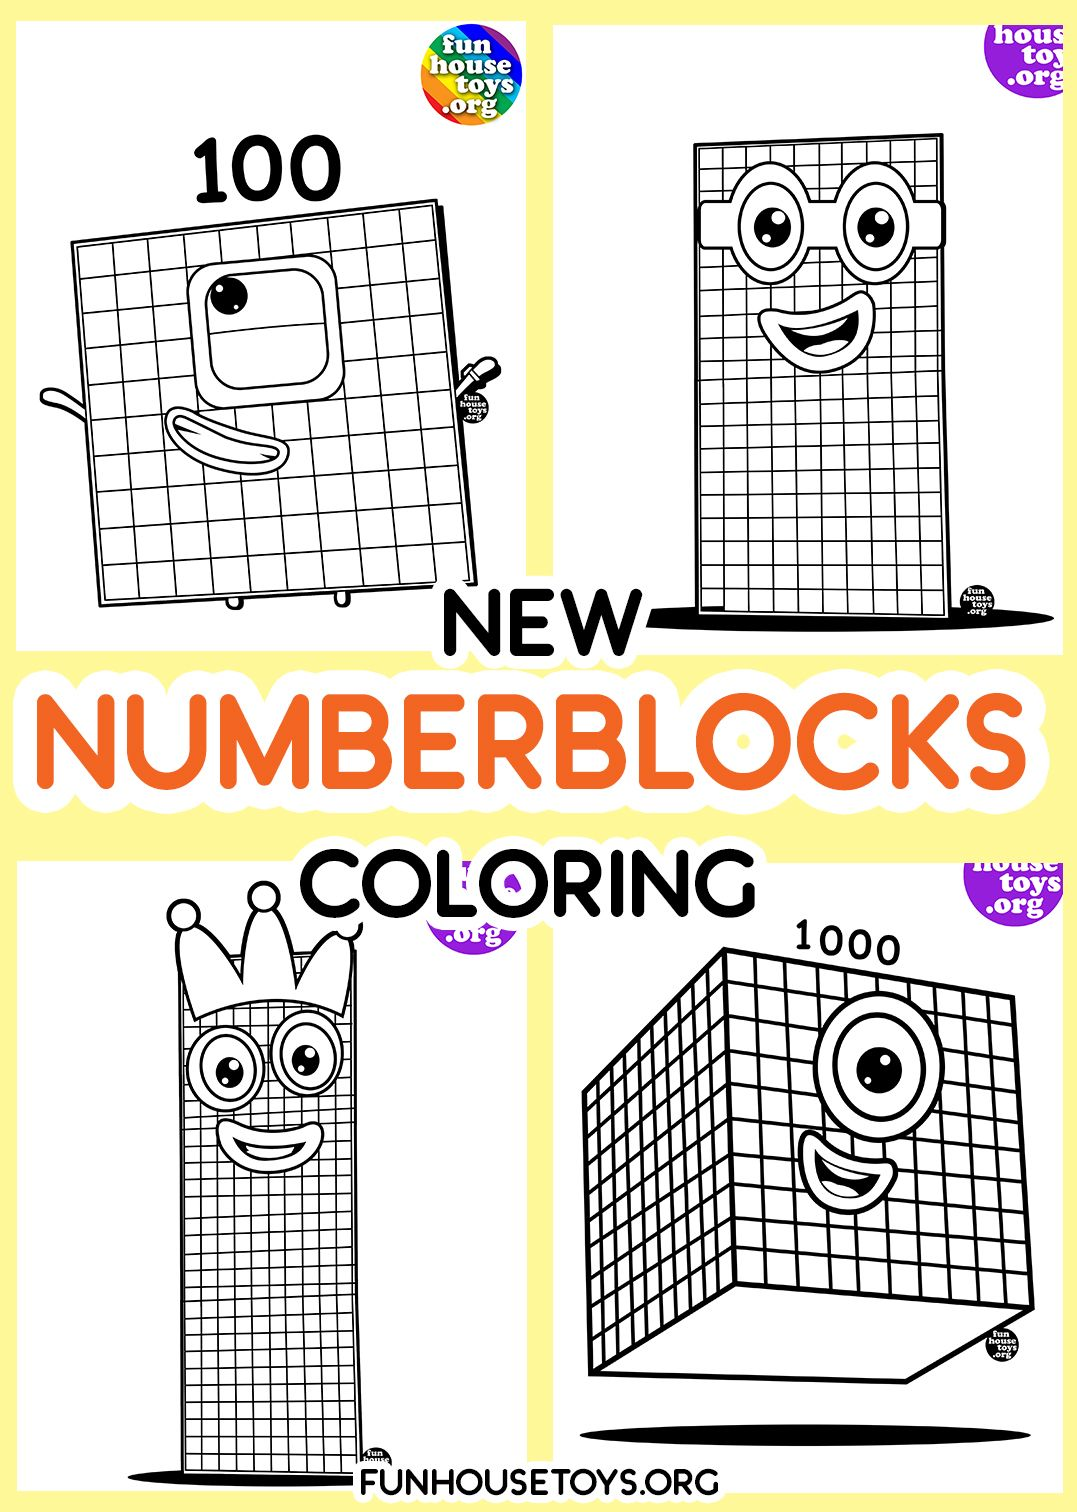 Learning To Count By 100 Fun Coloring Pages For Kids Cool Coloring Pages Coloring Pages Coloring Pages For Kids